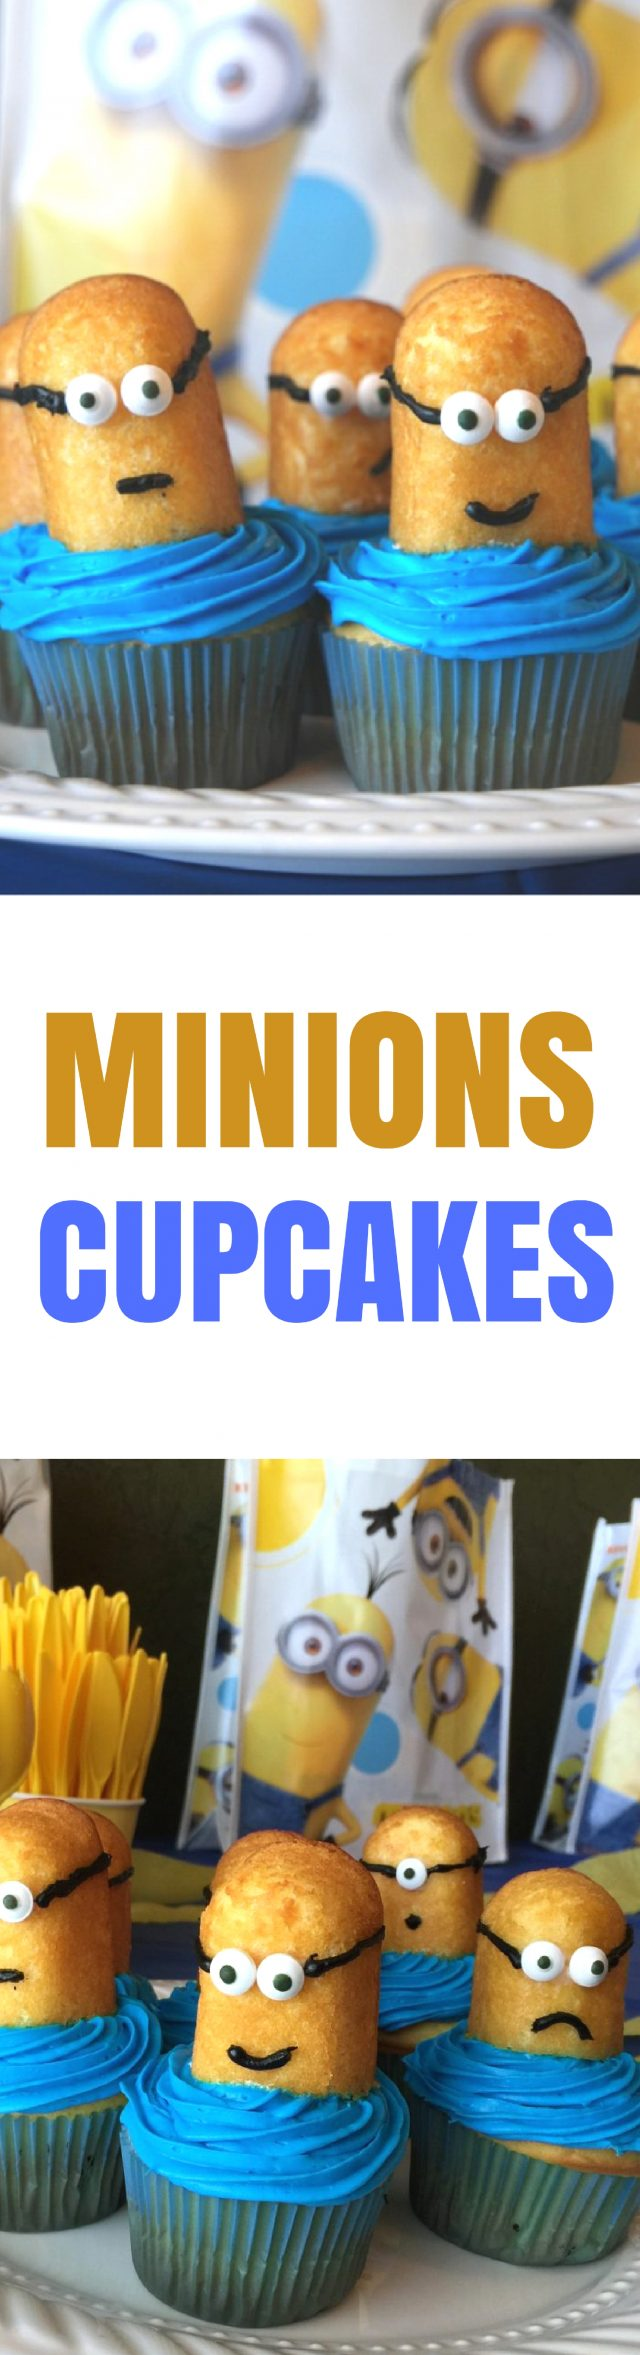 How to Make Despicable Me Minions Movie Party Cupcakes Do your kids love the Minions as much as mine do? Actually, our whole family can't get enough of these silly little yellow dudes, and we're so excited to see Despicable Me on June 30th in theaters! To celebrate the upcoming release of the movie, I decided to share a fun Minions cupcake that I made for a fun Minions party a few years ago. Another cute idea that went over well at the last party was this Minions mason jar dispenser that I added some paper googles on it.